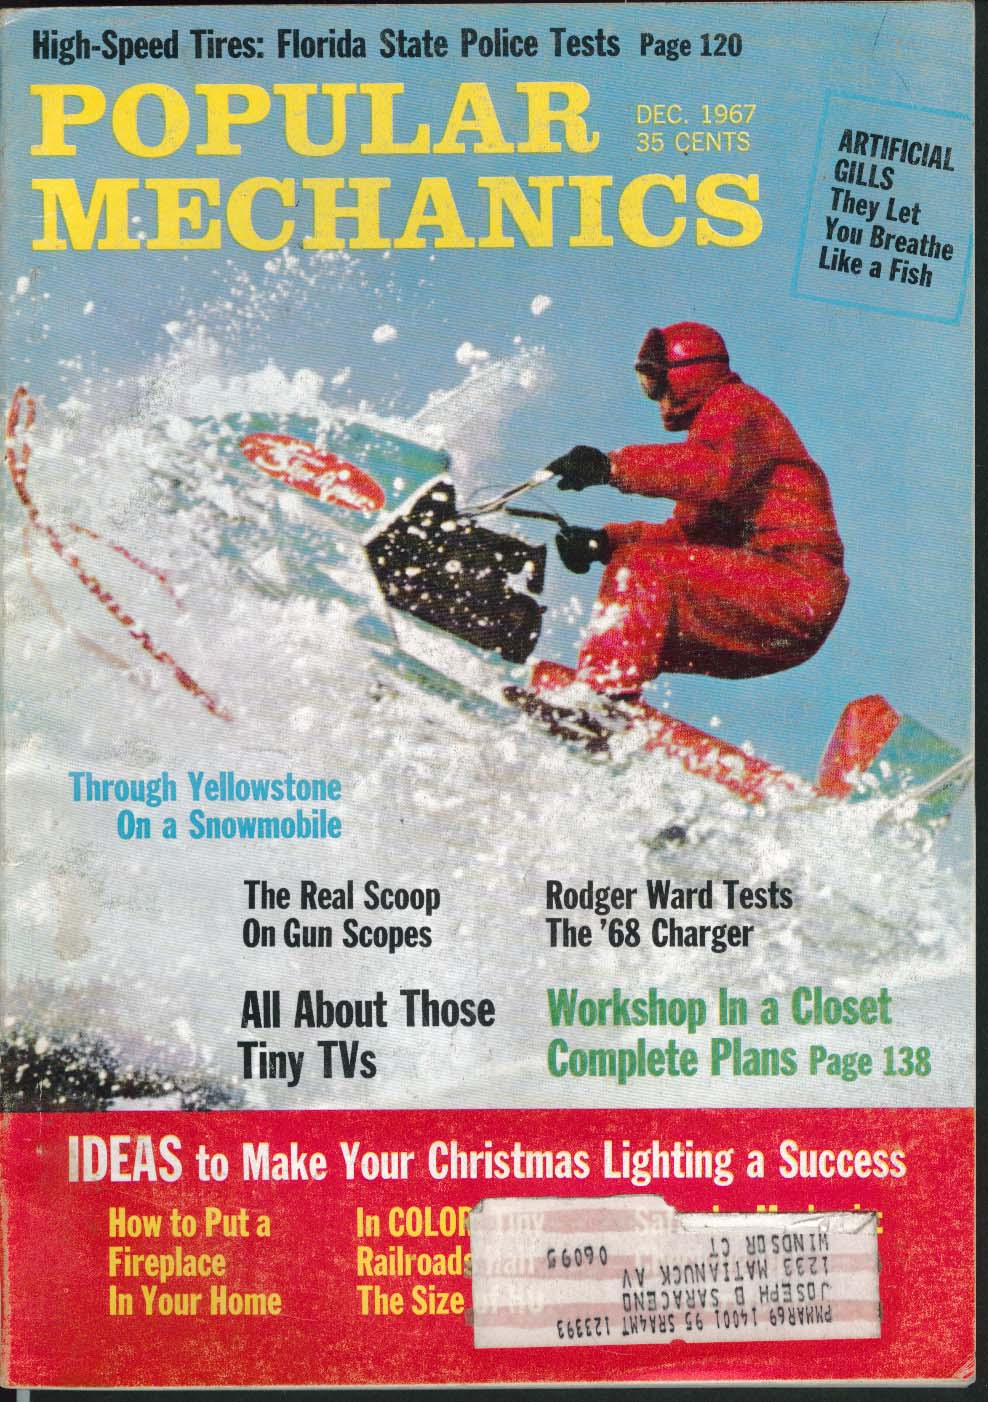 Image for POPULAR MECHANICS Rodger Ward 1968 Dodge Charger Yellowstone Snowmobile 12 1967